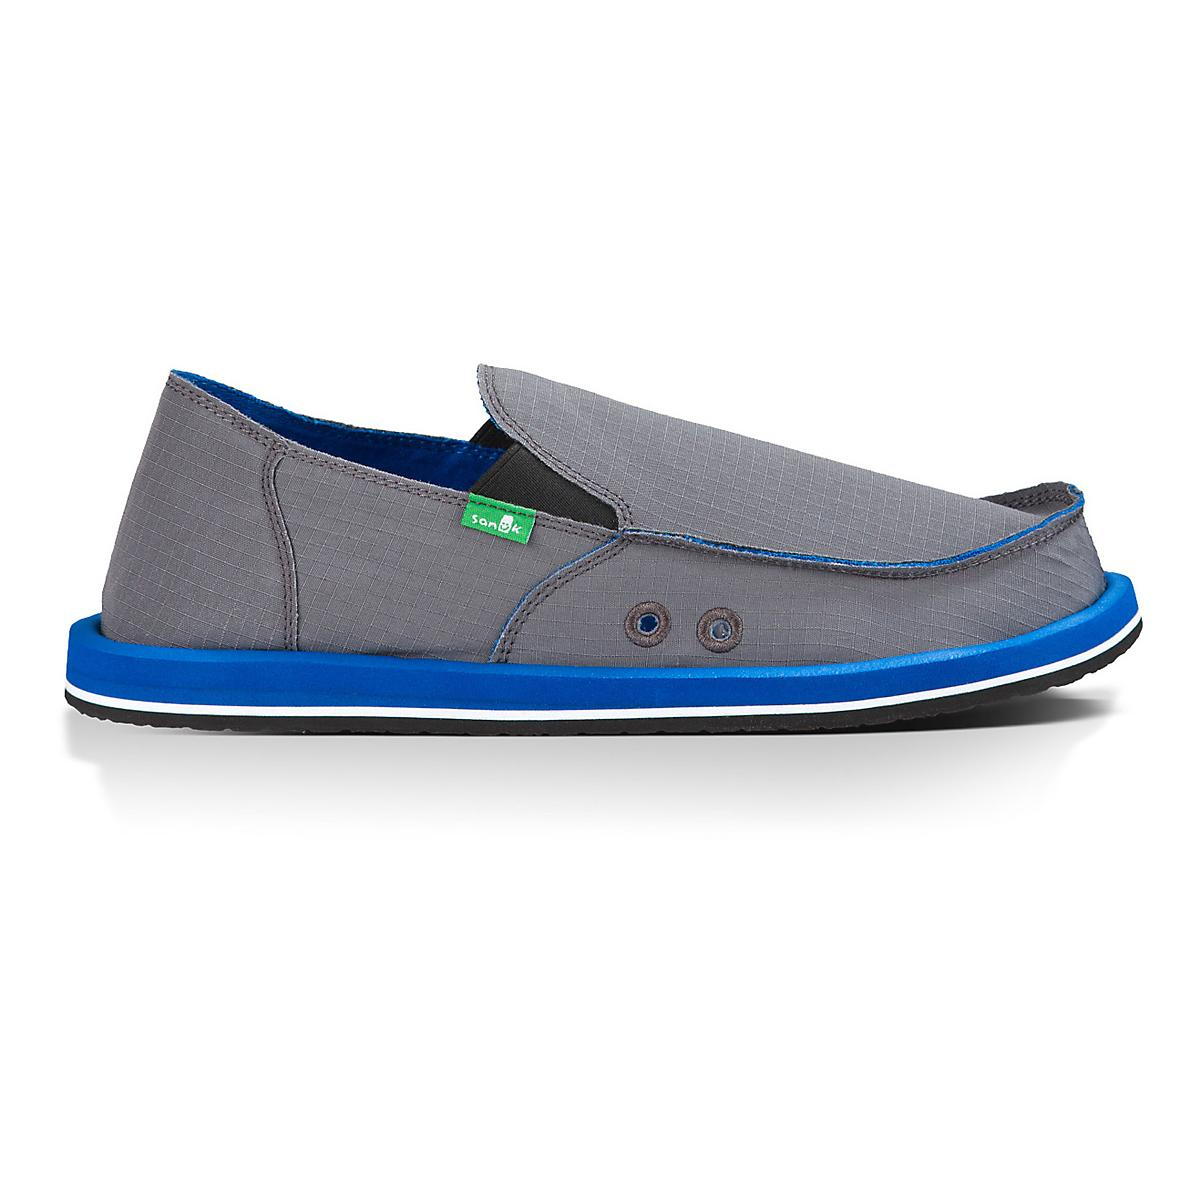 Men's Sanuk�Vagabond Nights